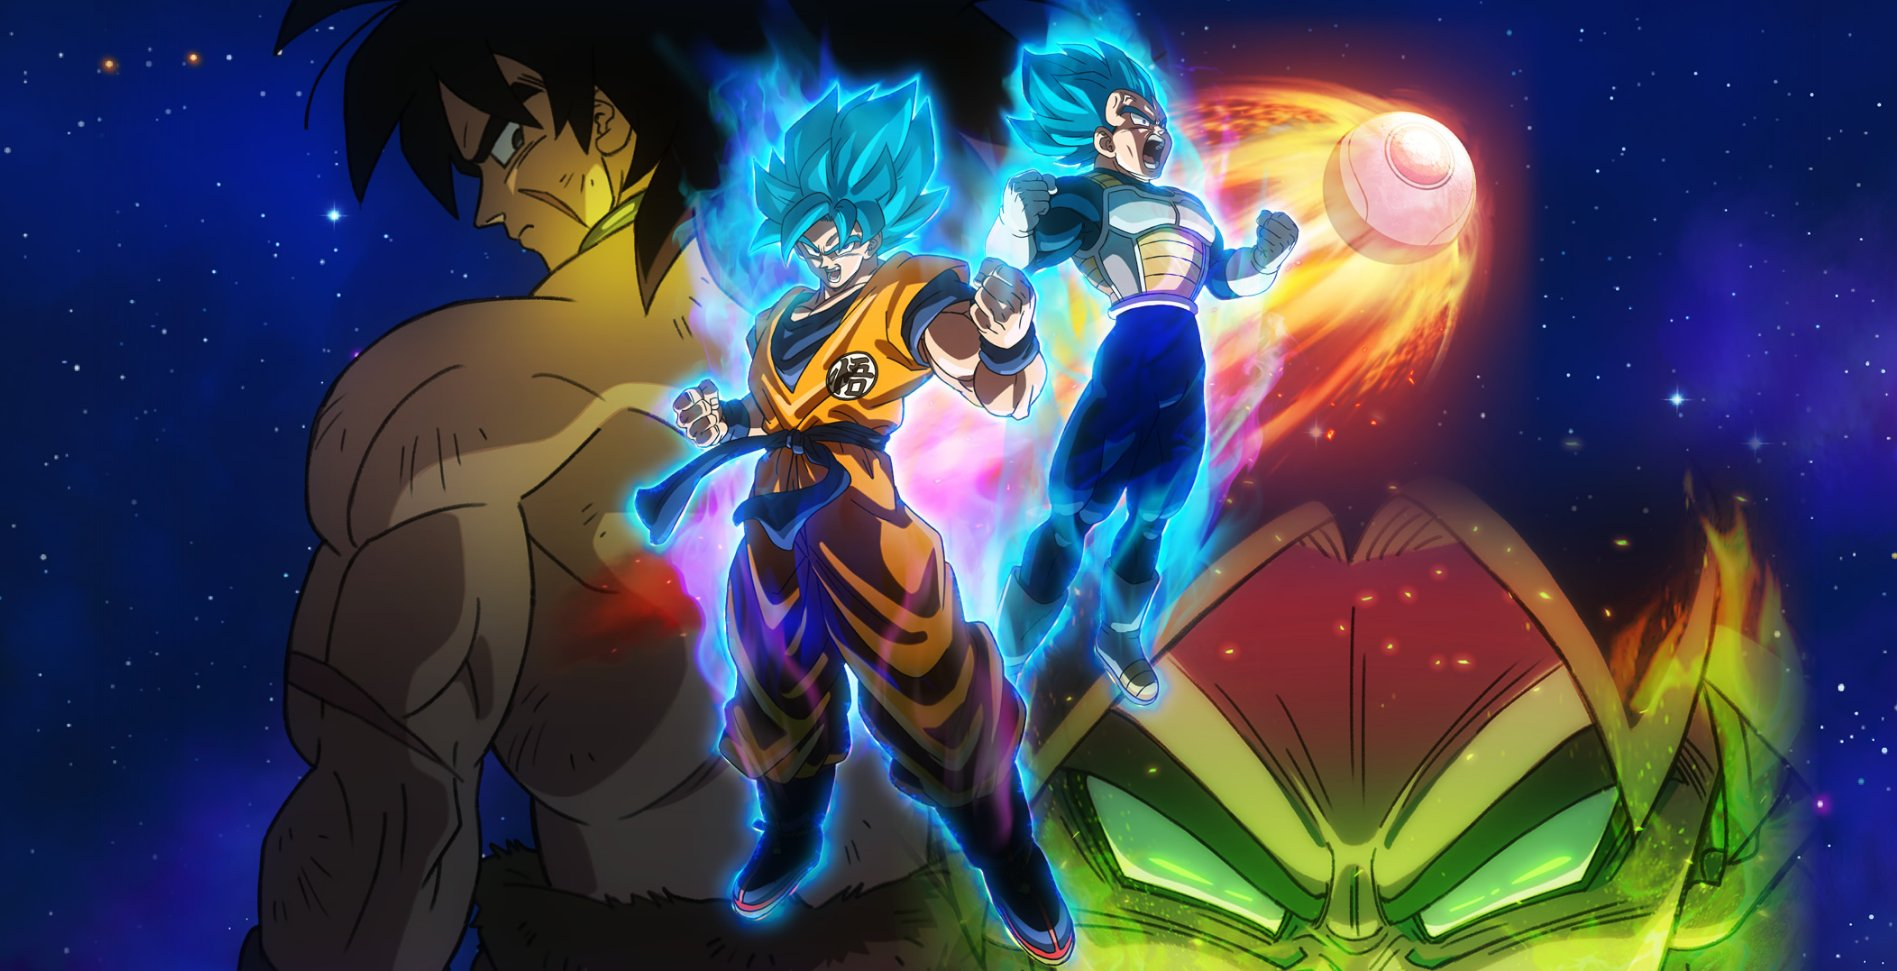 Dragon Ball Z Goku Vs Broly Wallpaper Posted By Christopher Peltier